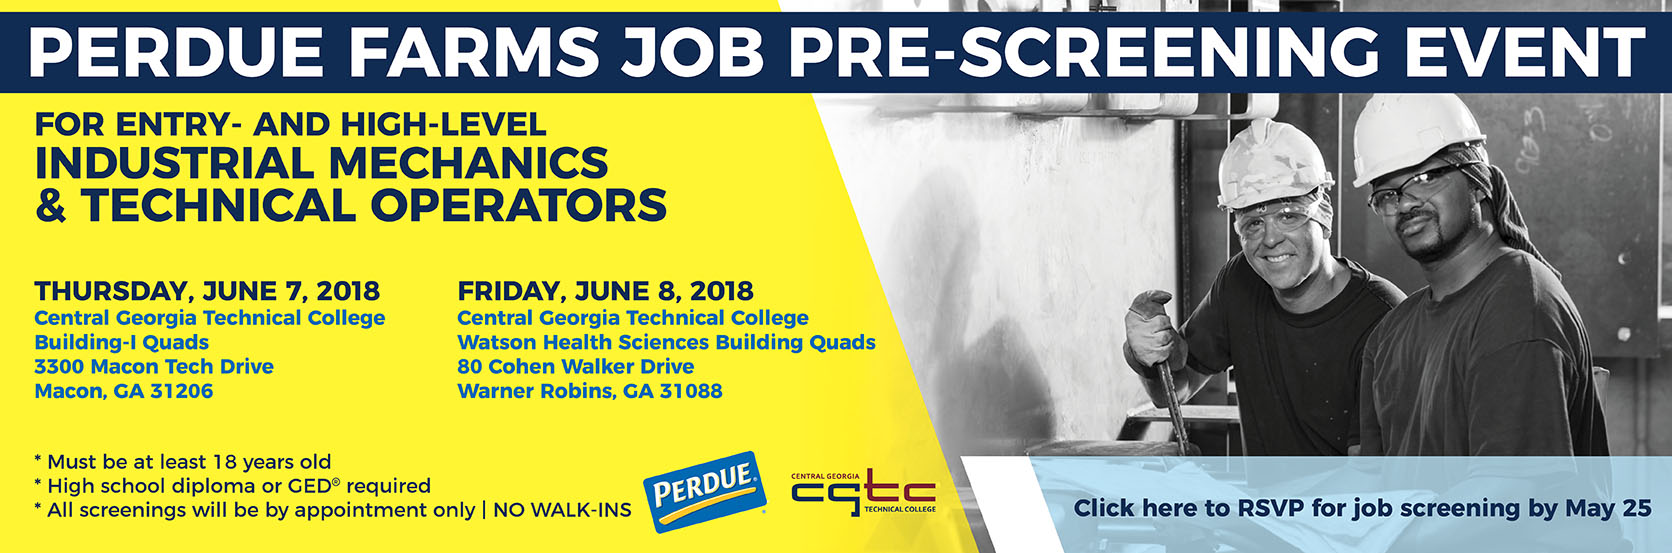 Perdue Farms Job Pre-Screening Event.